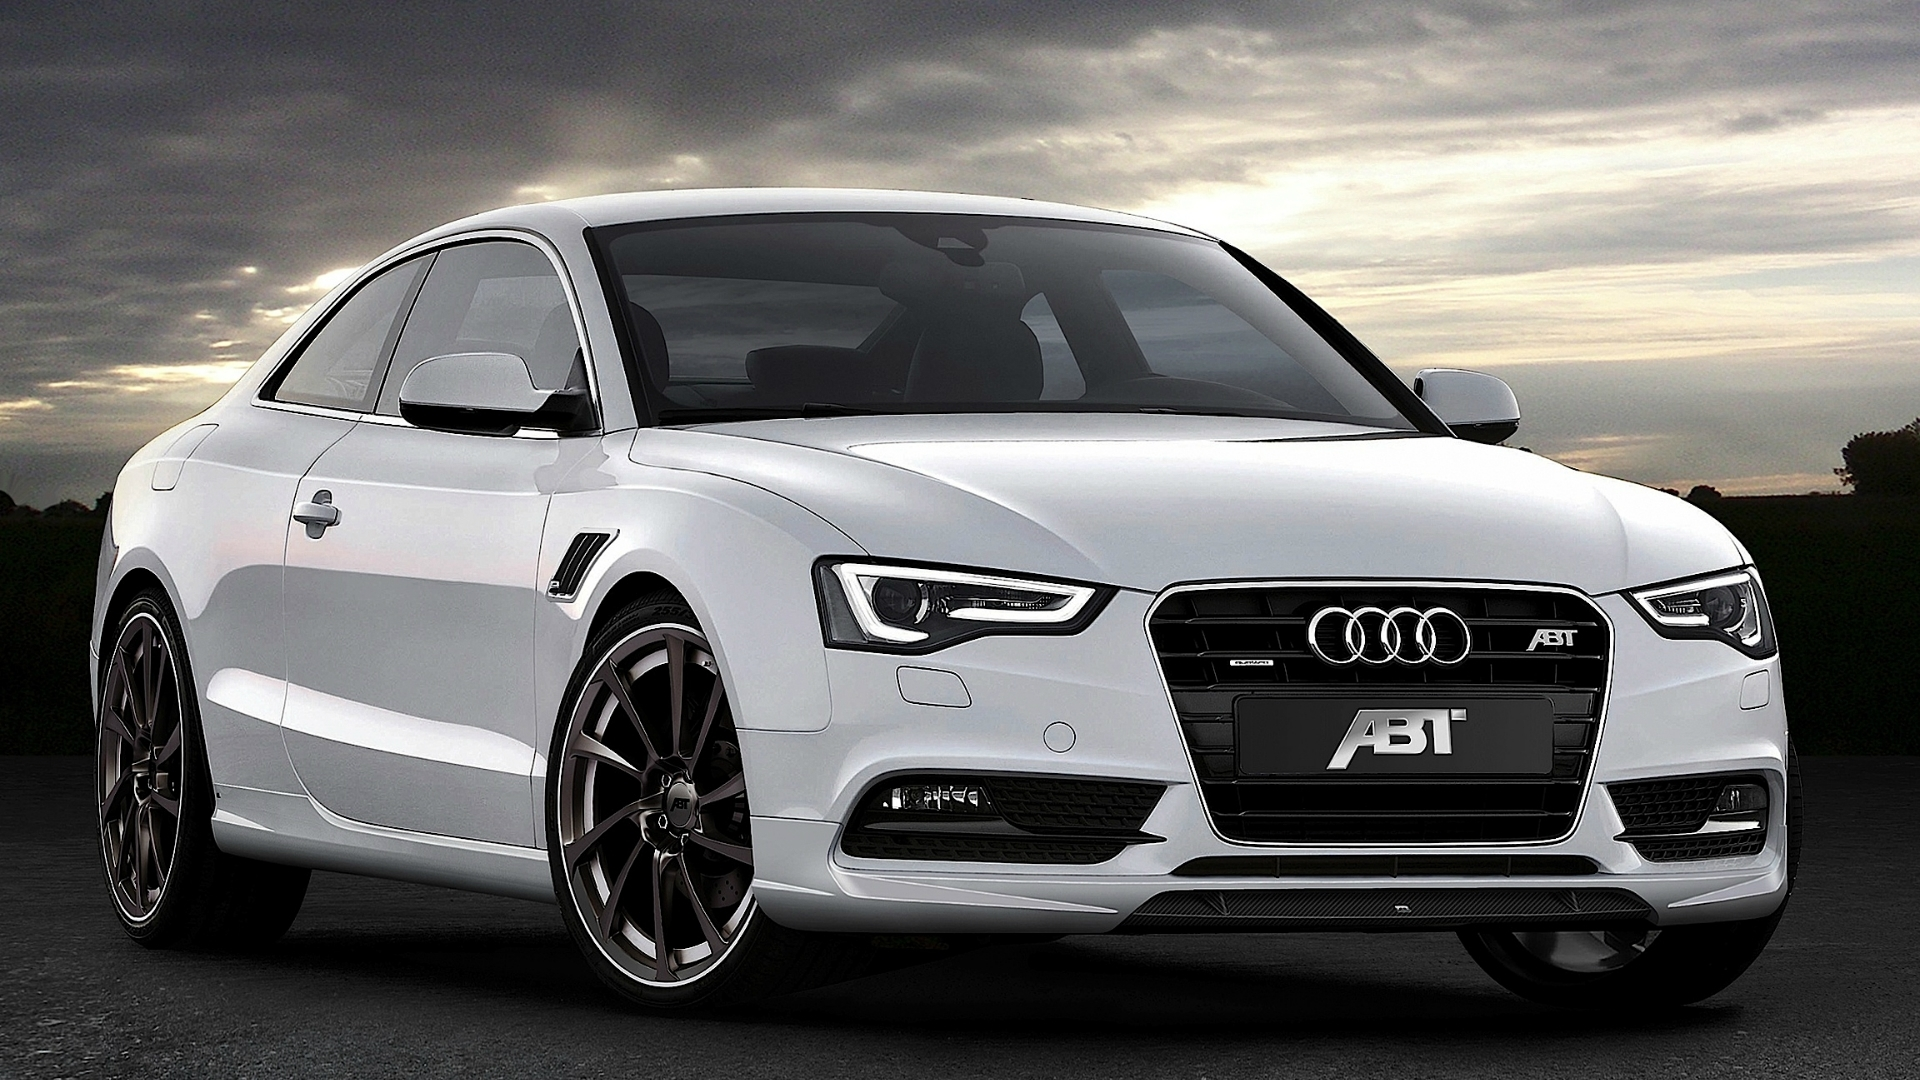 White Audi Front Look 380.38 Kb